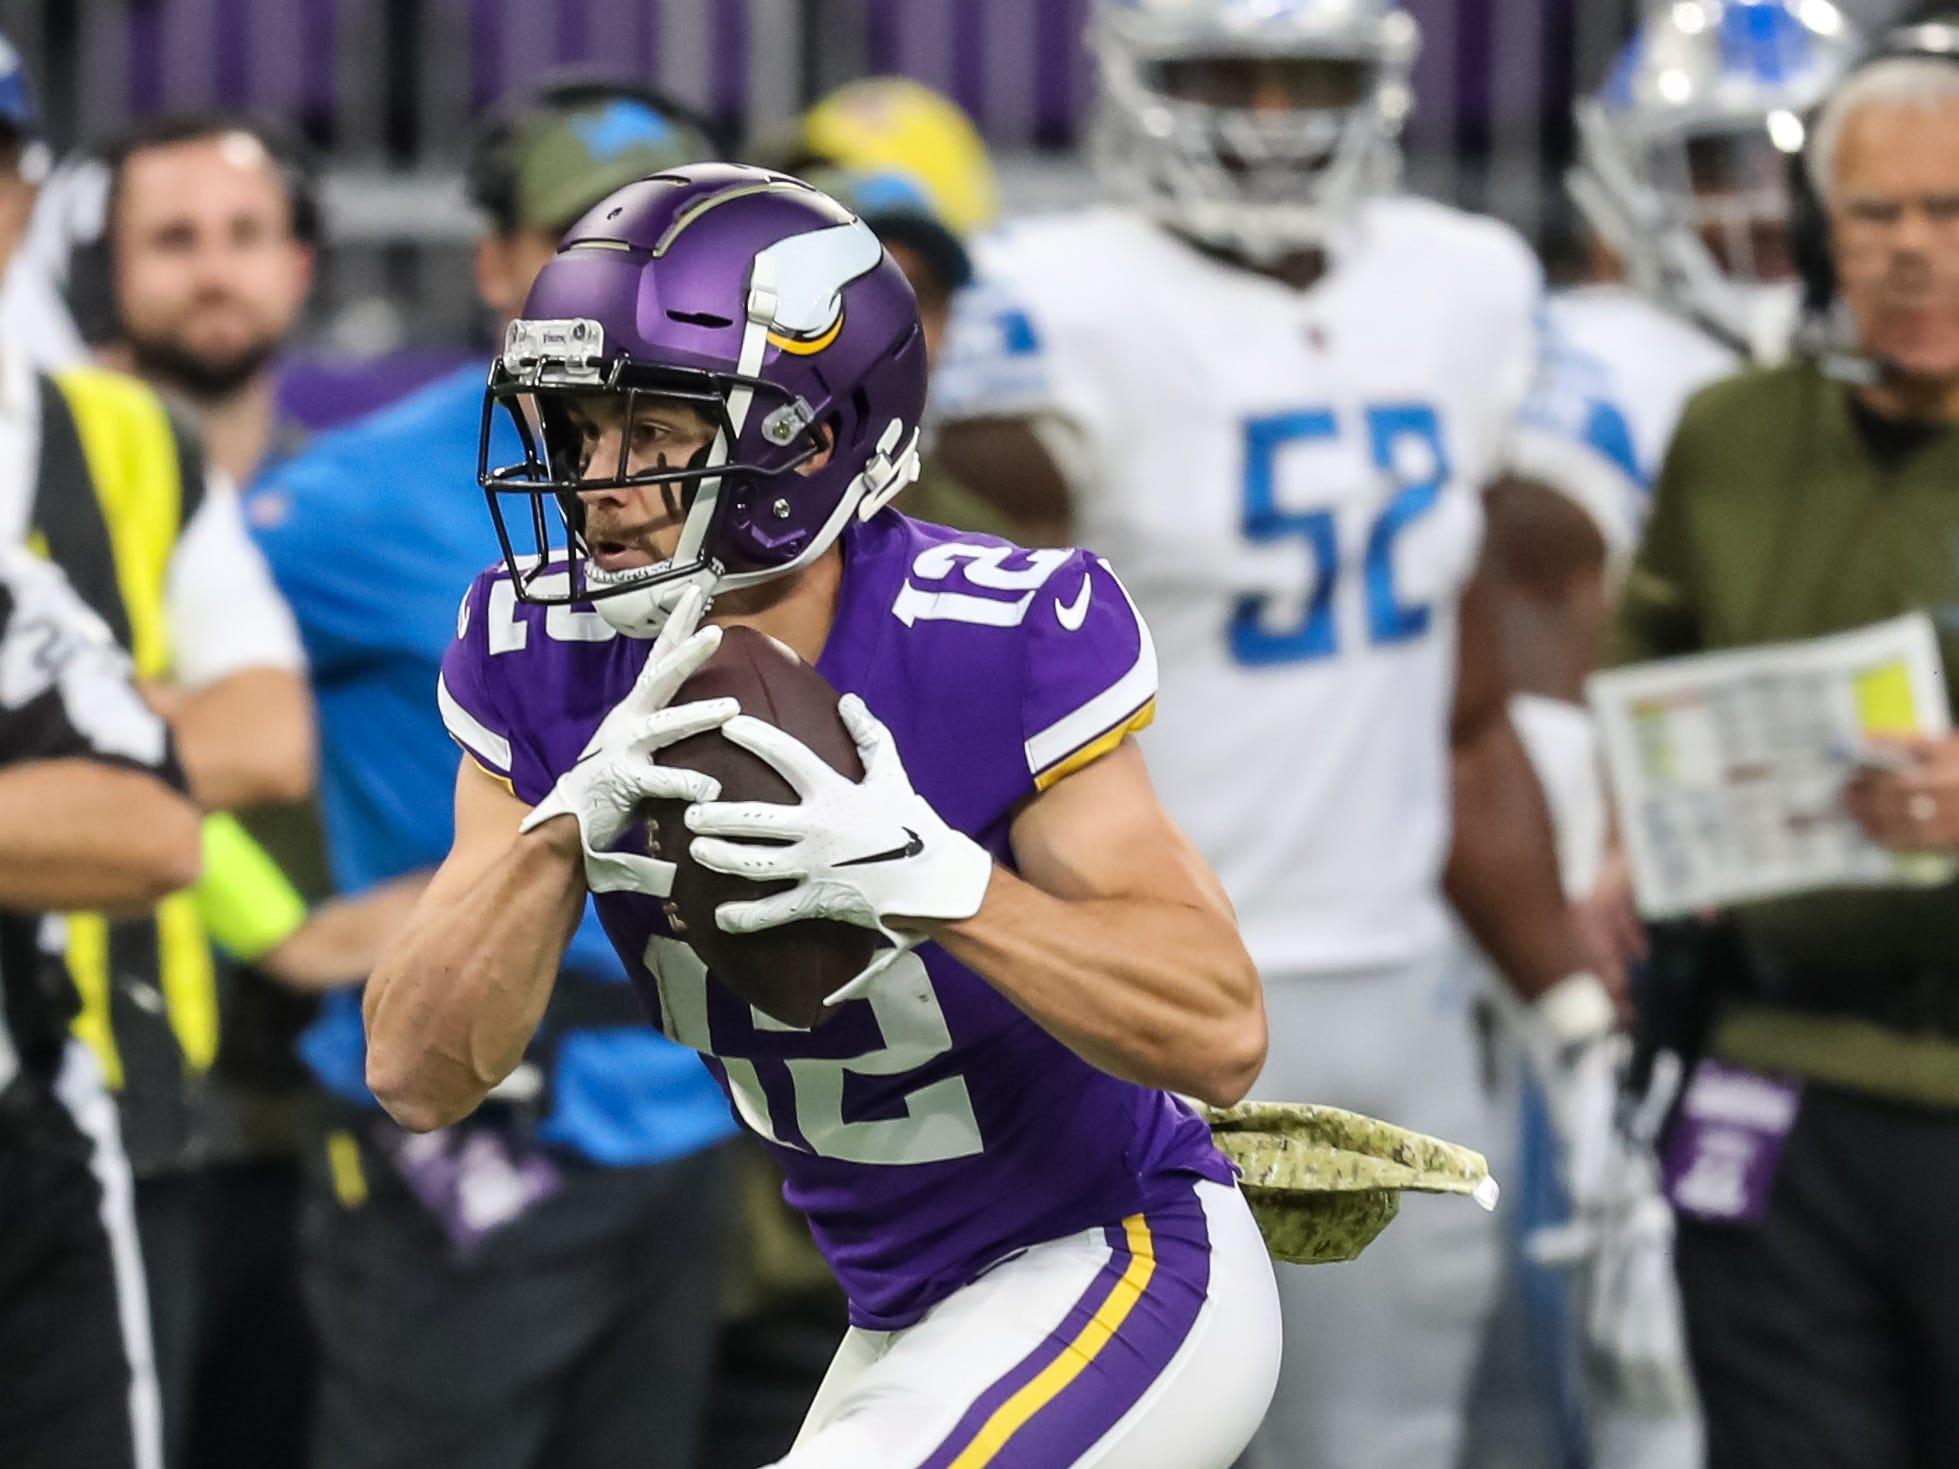 Minnesota Vikings wide receiver Chad Beebe (12) hauls in a pass during the first quarter against the Detroit Lions at U.S. Bank Stadium.